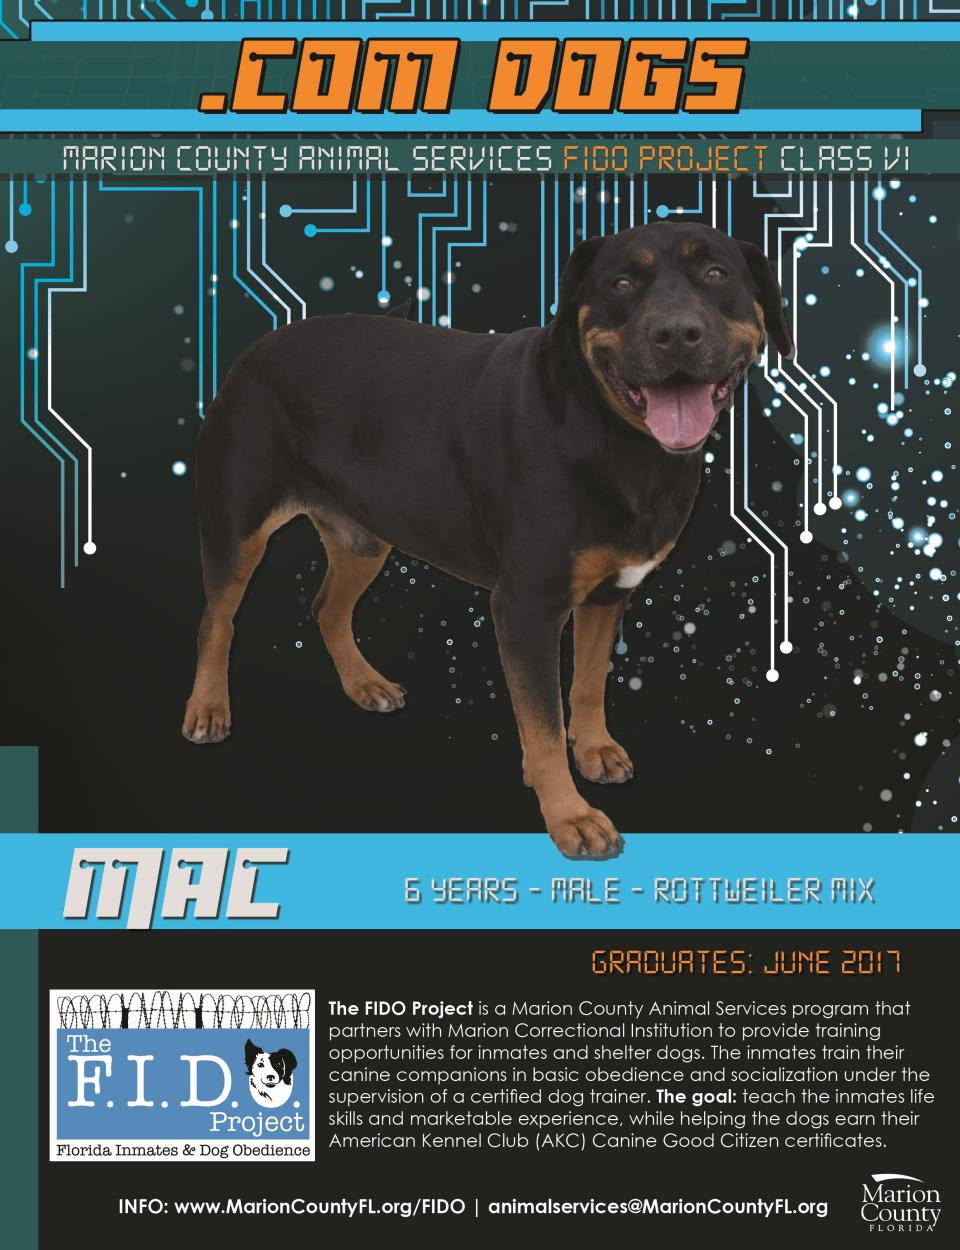 fido_dot_com_mac